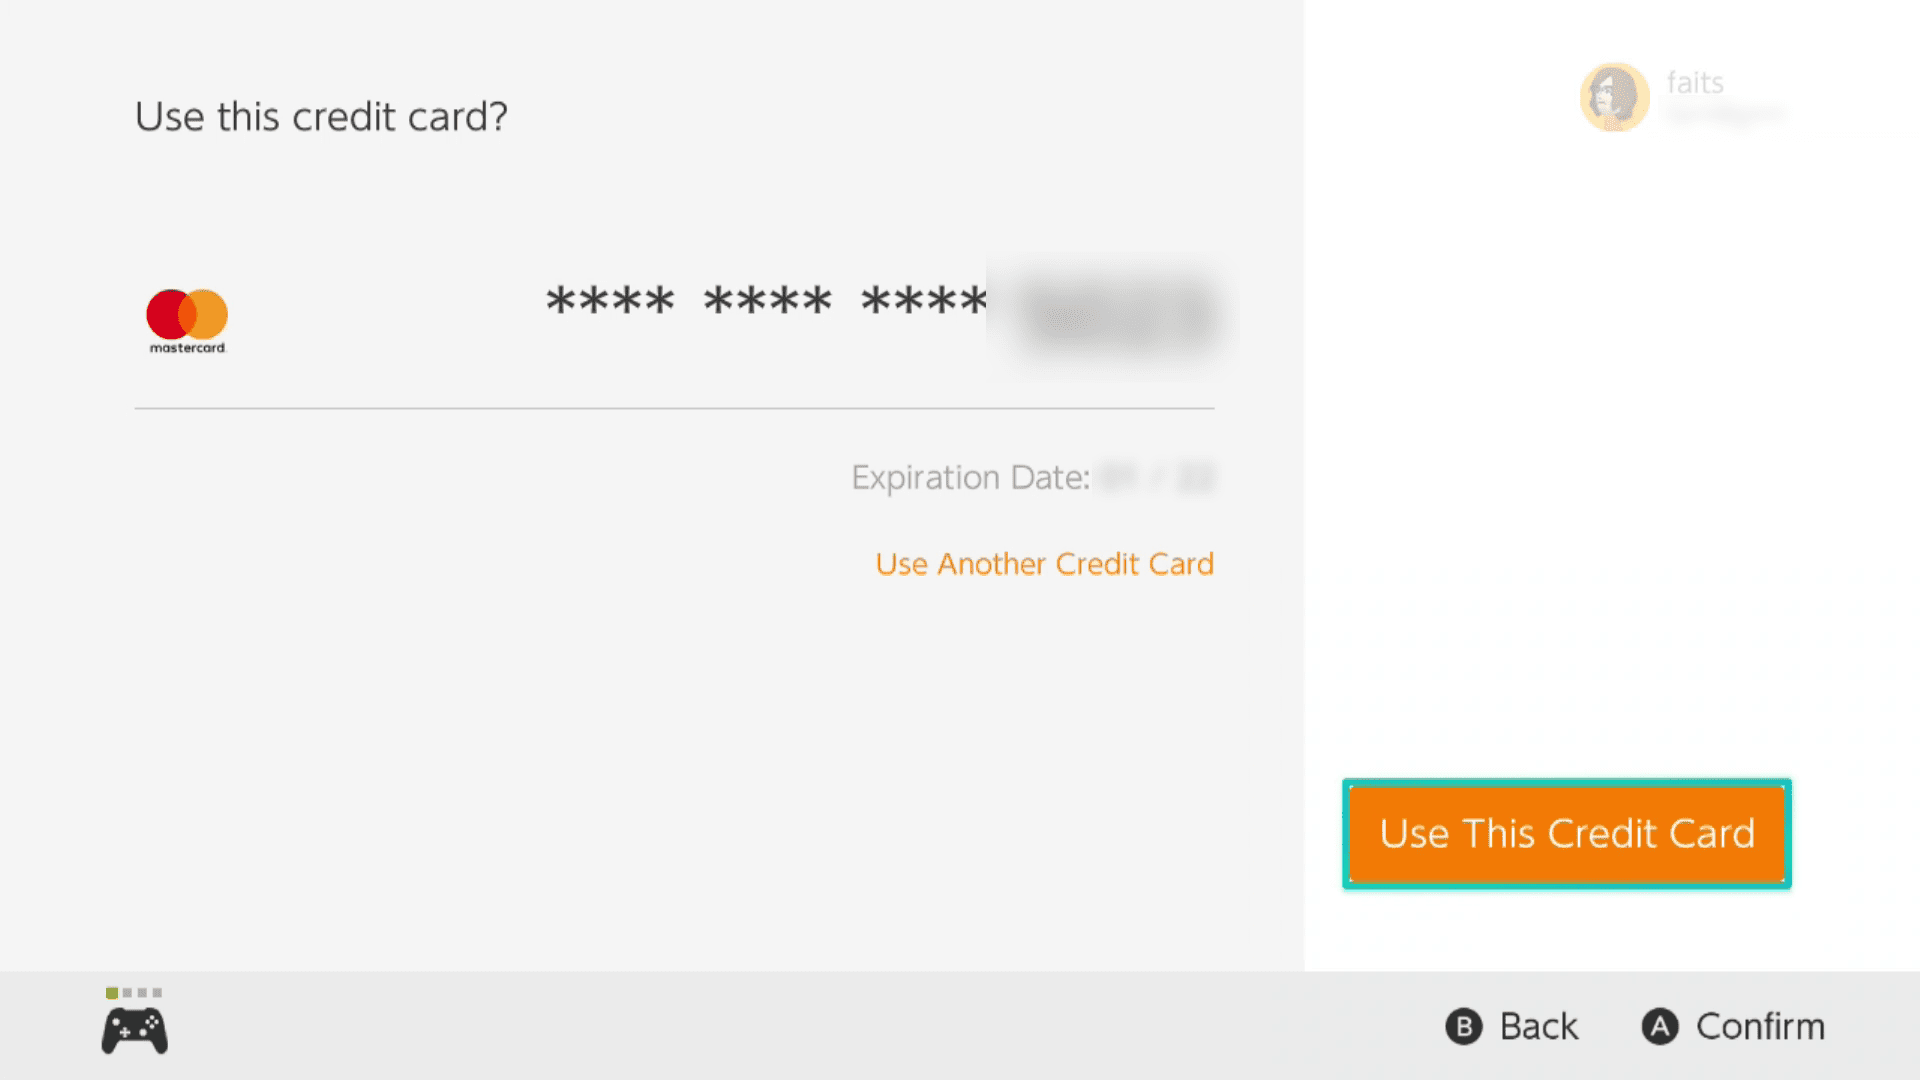 Use This Credit Card selected in the Nintendo eShop.